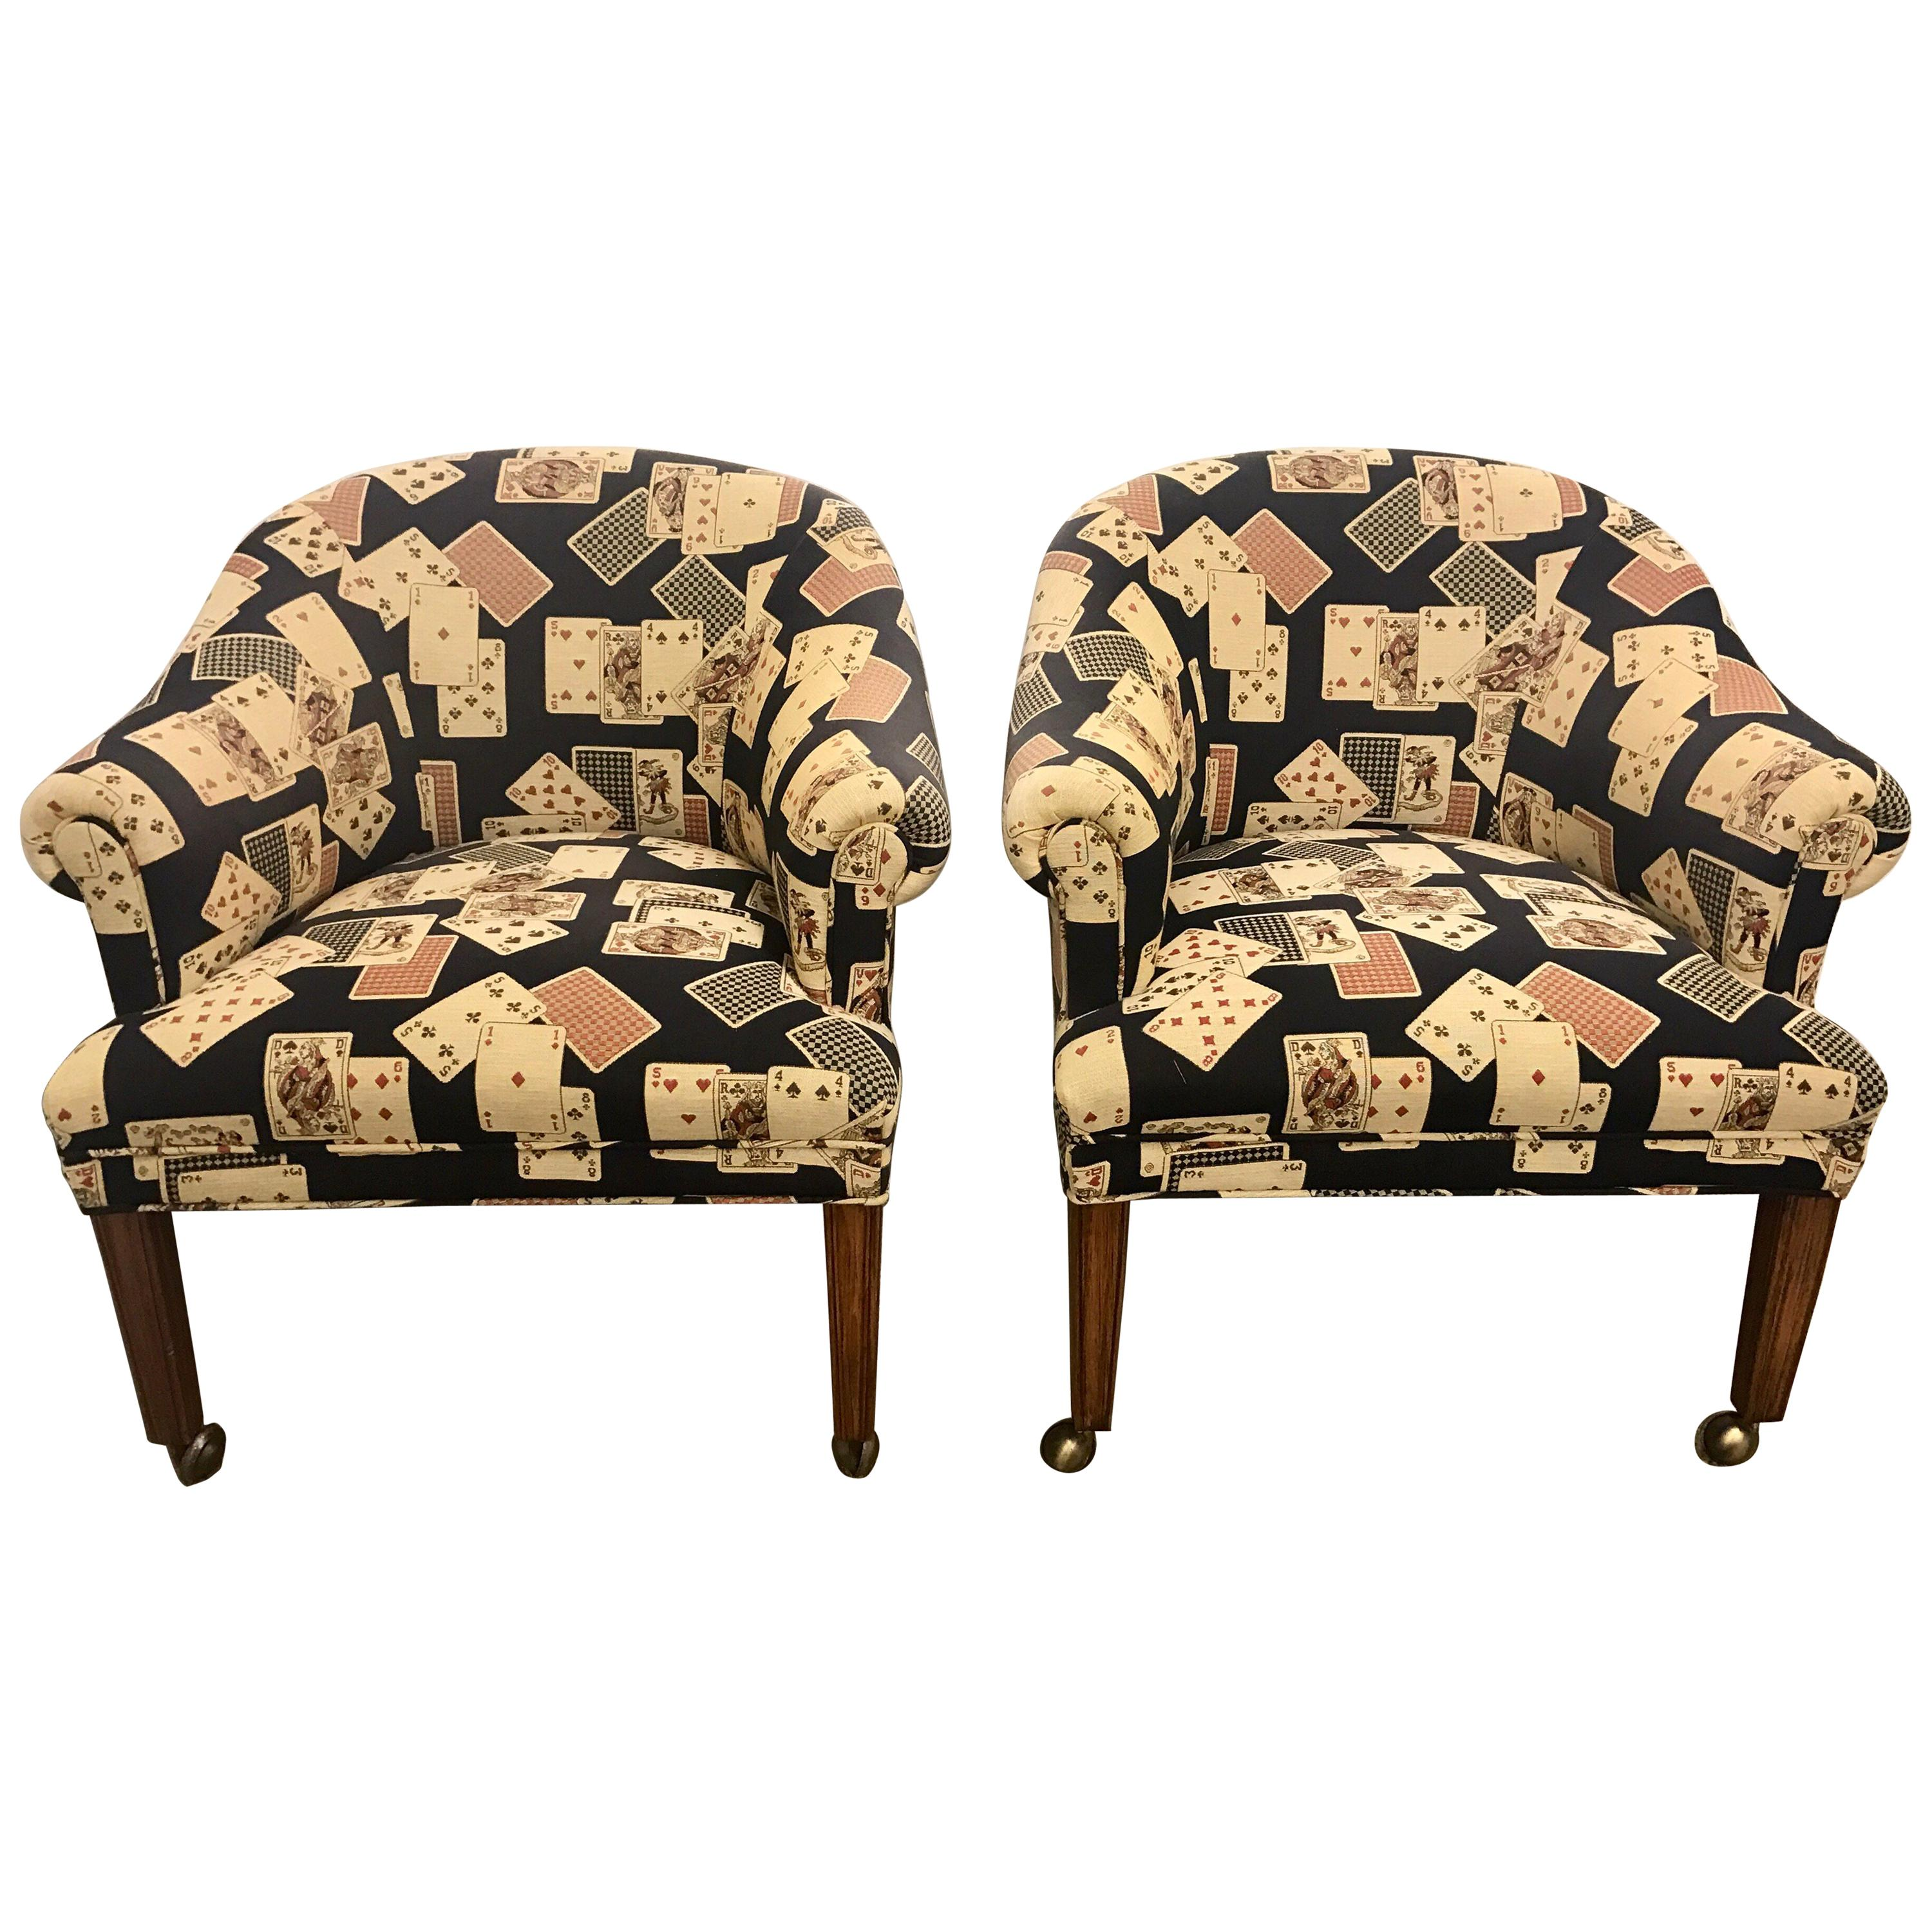 Pair of Upholstered Card Game Chairs on Castors